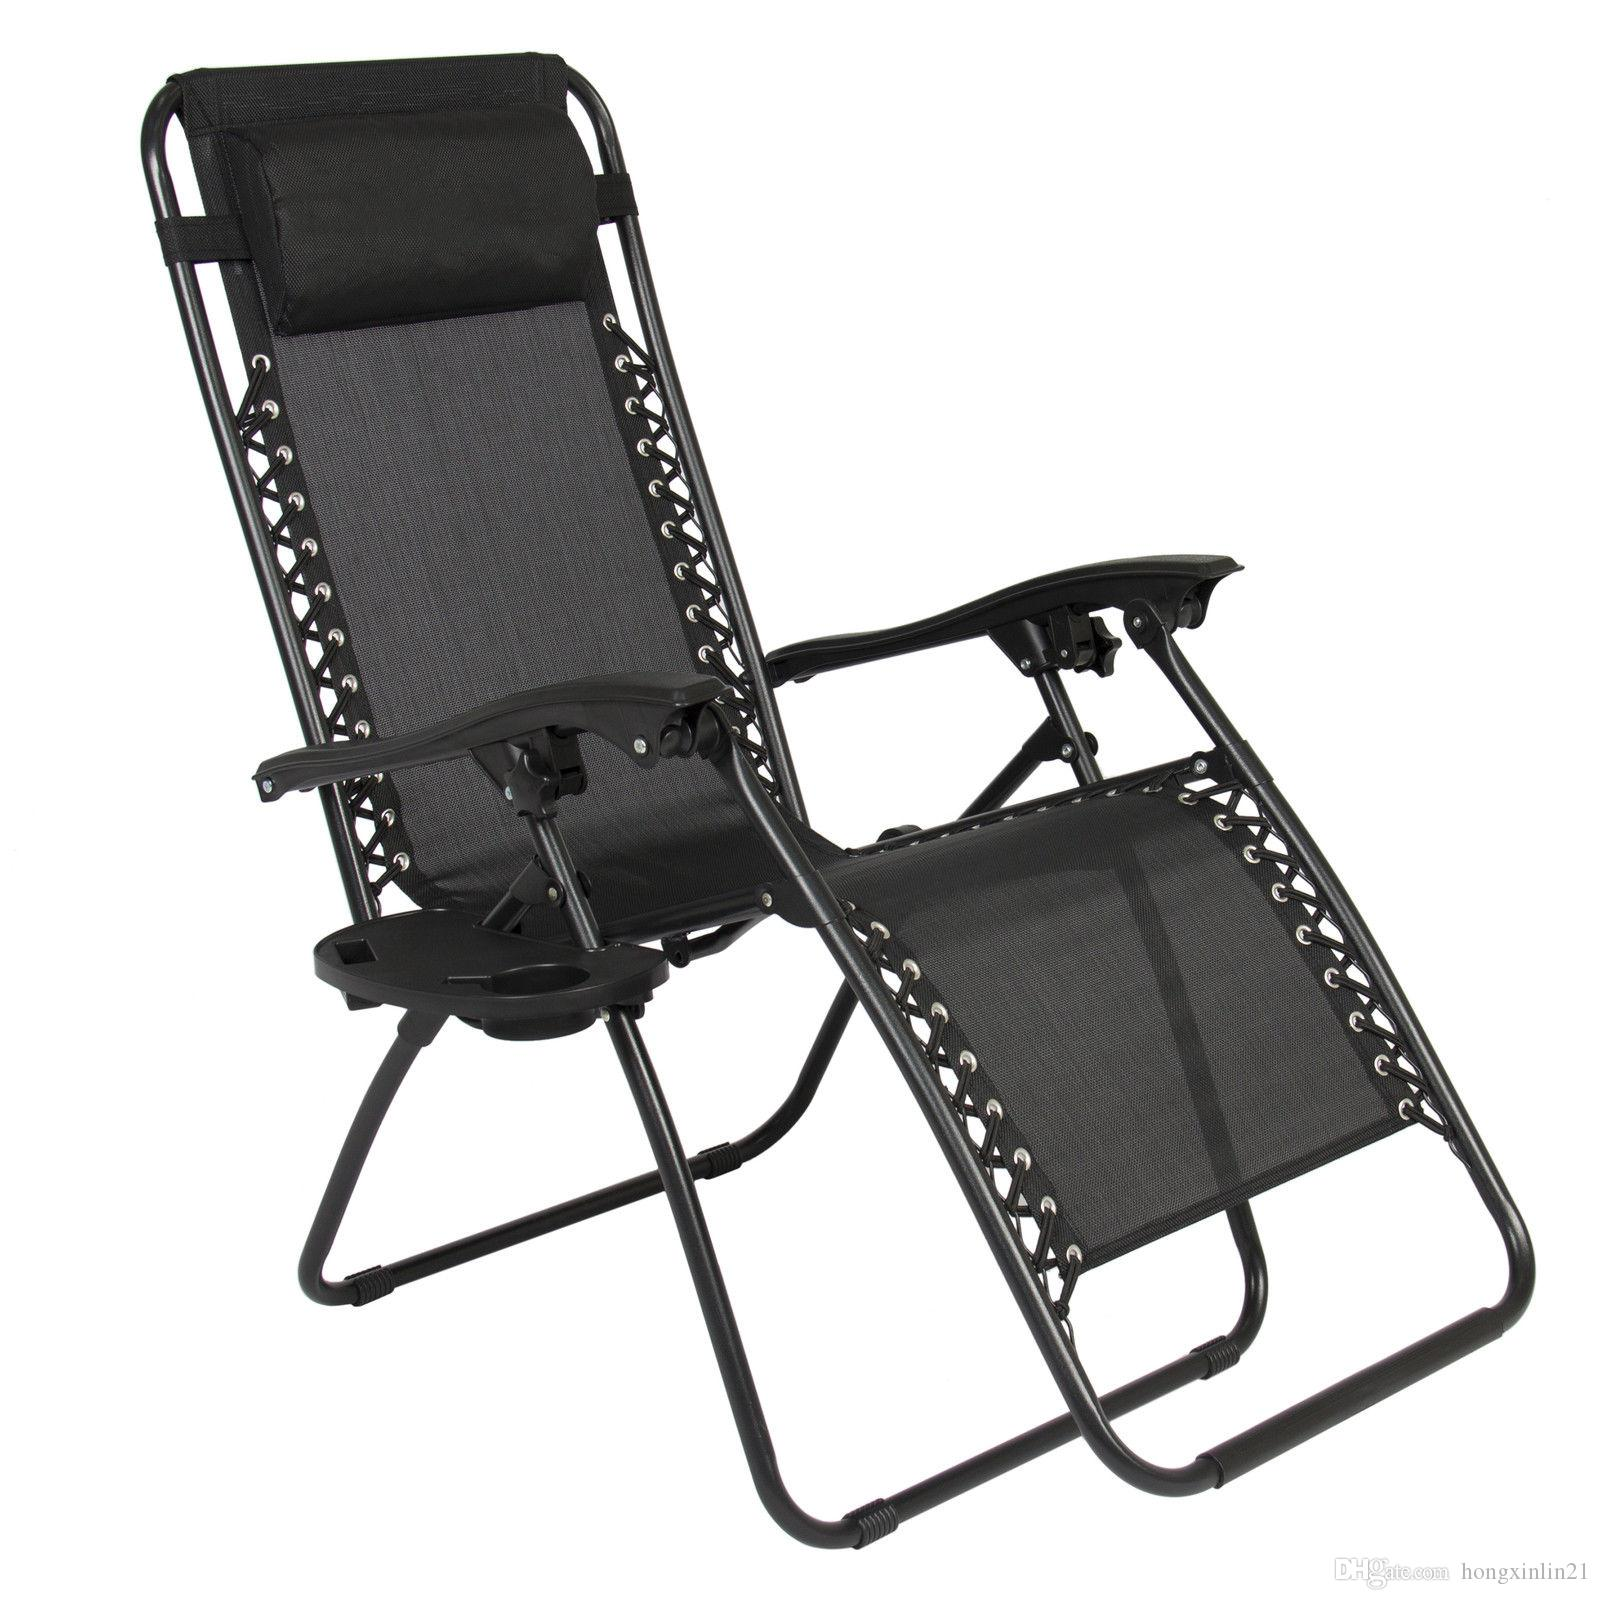 2018 Zero Gravity Chairs Case Of 2 Black Lounge Patio Chairs Outdoor Yard  Beach New From Hongxinlin21, $70.36 | Dhgate.Com